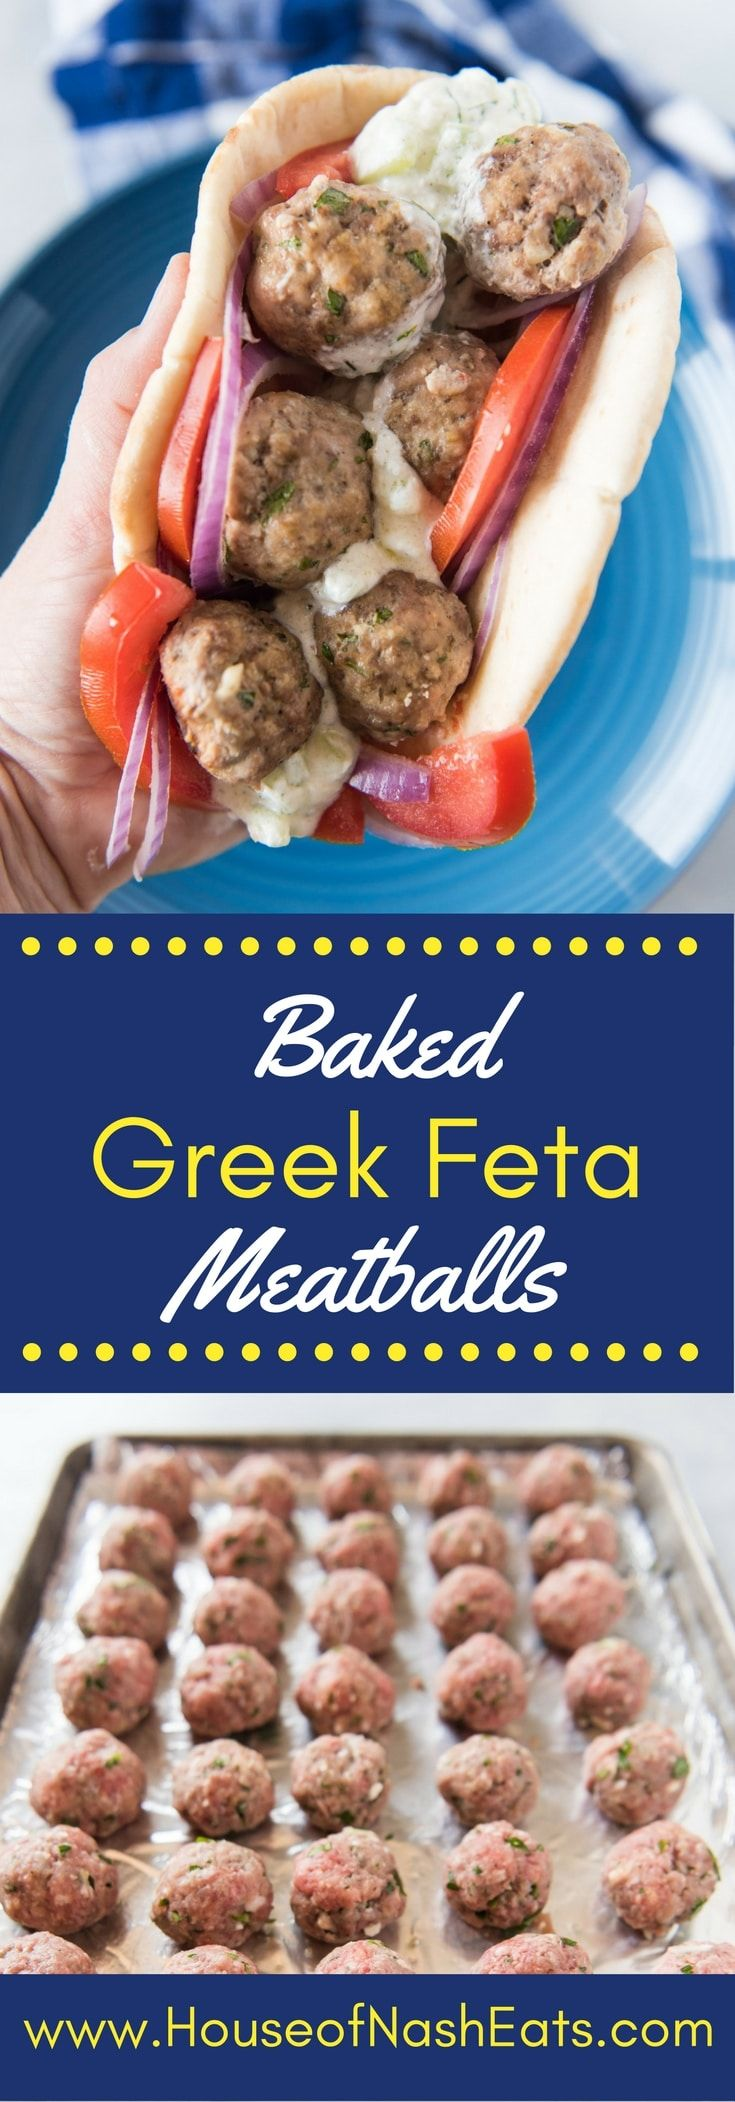 Rich Ground Lamb And Ground Beef And Mixed With Fresh Parsley Garlic Feta Cheese Breadcrumbs And Other H Lamb Recipes Homemade Tzatziki Sauce Greek Recipes